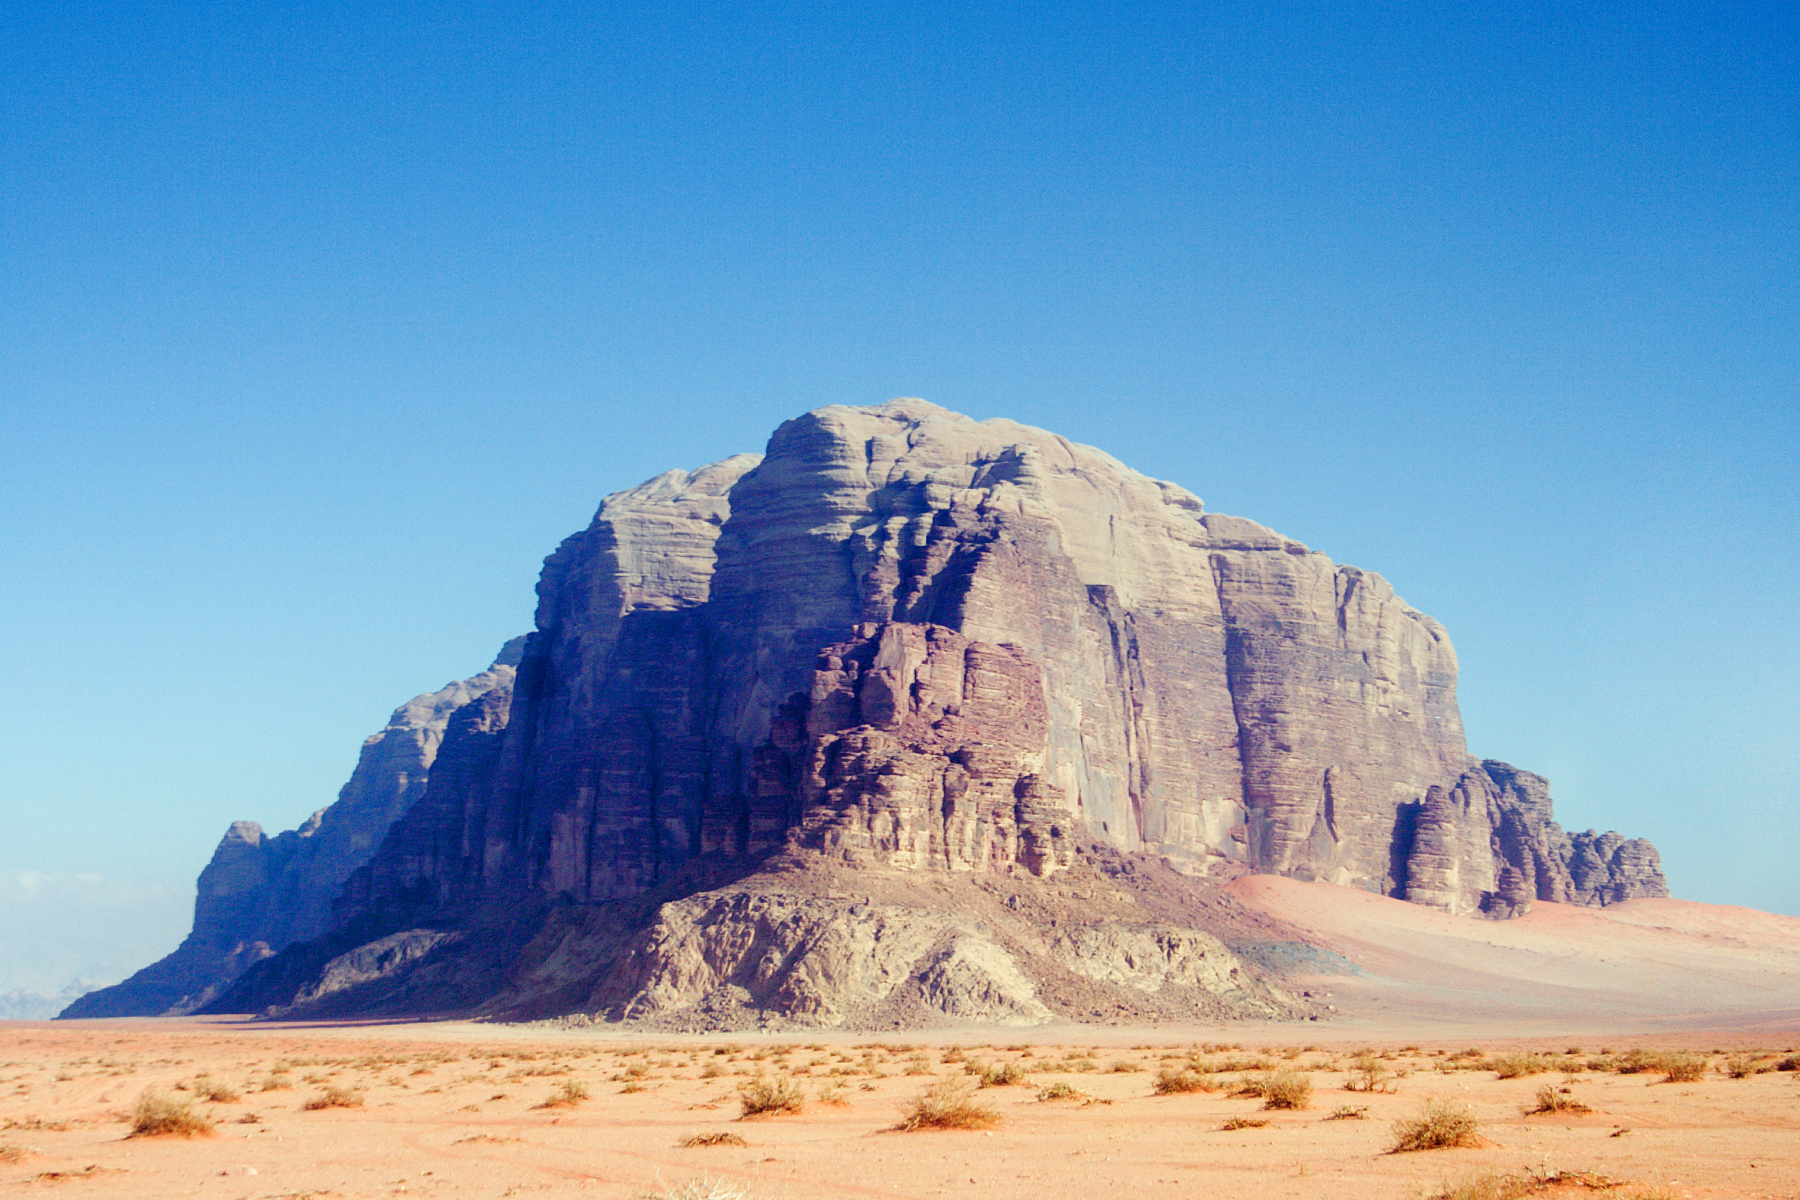 File:Wadi Rum Monument.jpg - Wikipedia, the free encyclopedia